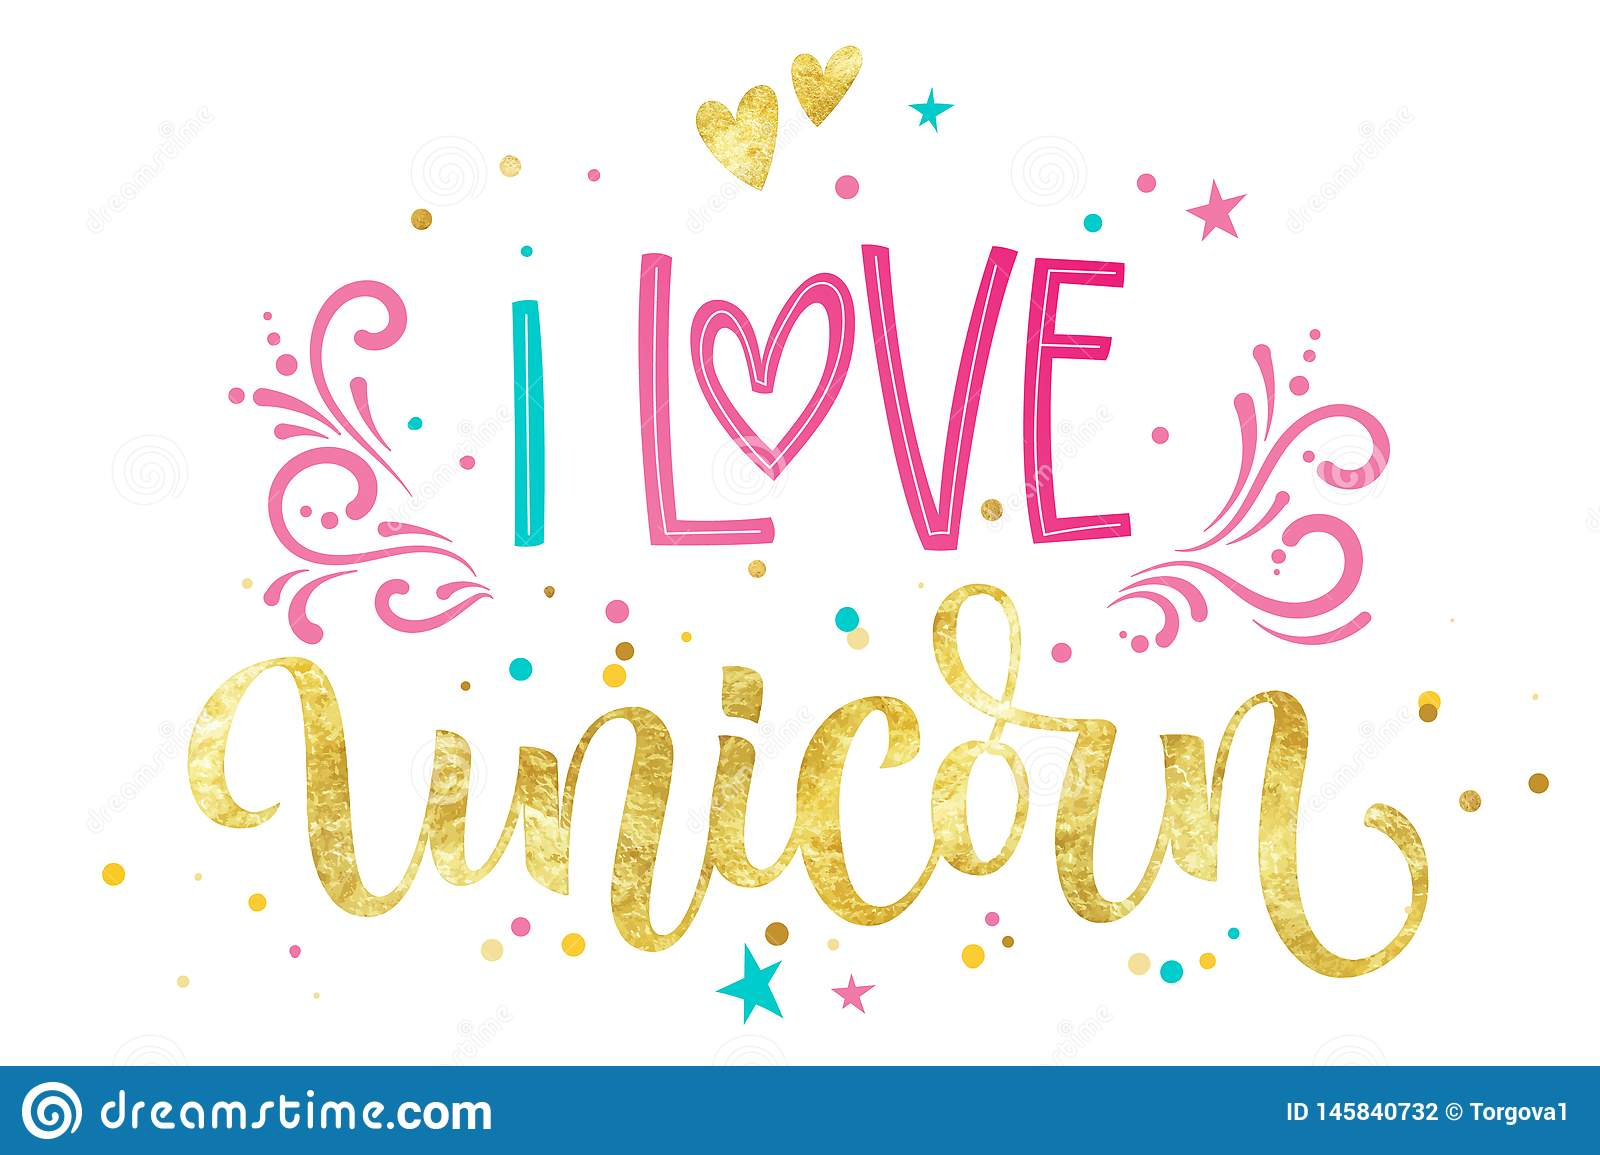 I Love Unicorn Hand Drawn Isolated Colorful Gold Foil